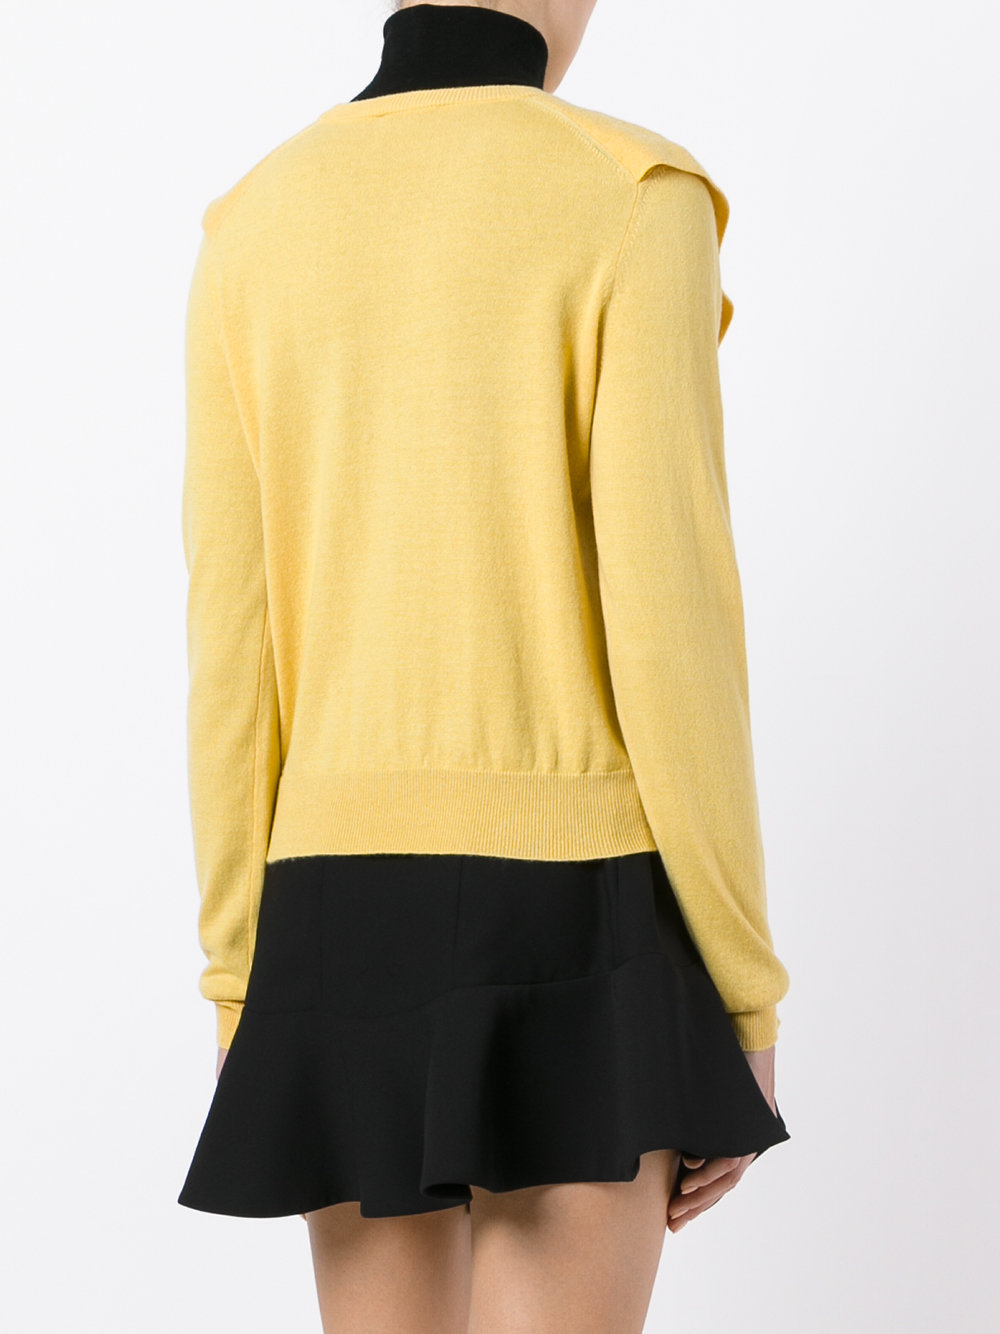 17-18AW C282 RUFFLED CASHMERE & COTTON SWEATER